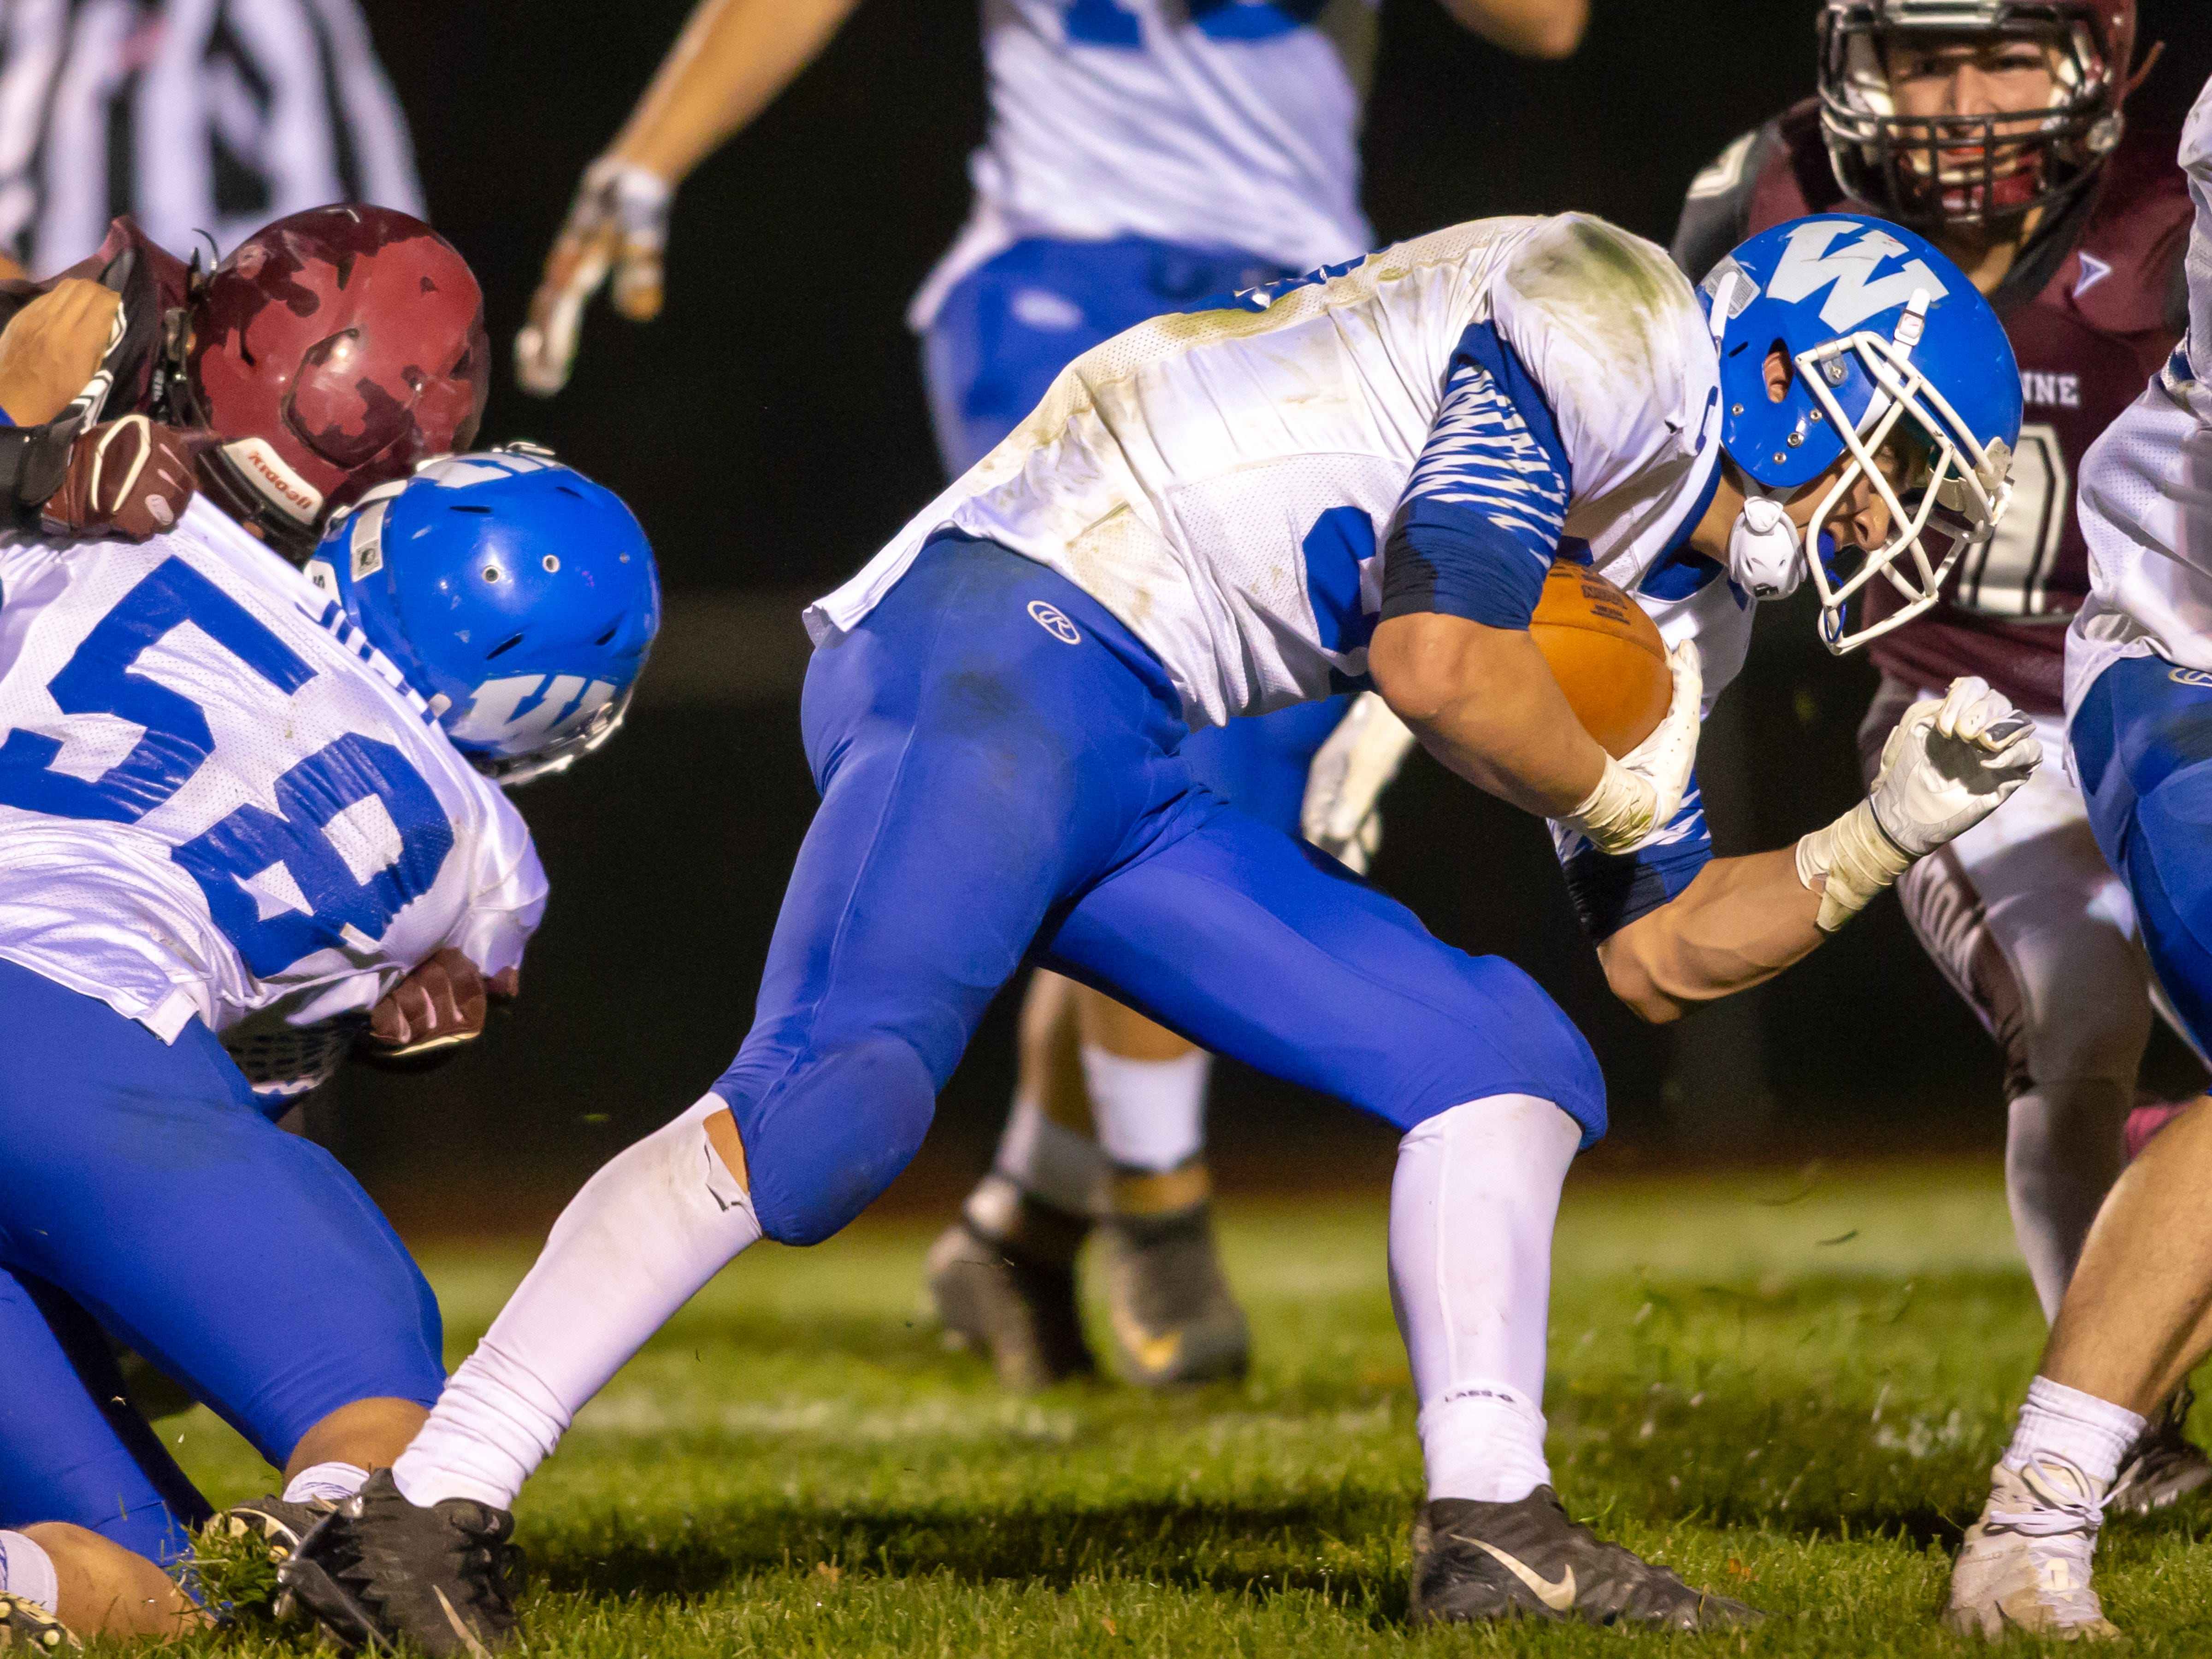 Wrightstown's Jeremy Van Zeeland pushes the ball forward playing against the Wolves at Winneconne High School on Friday, October 26, 2018.